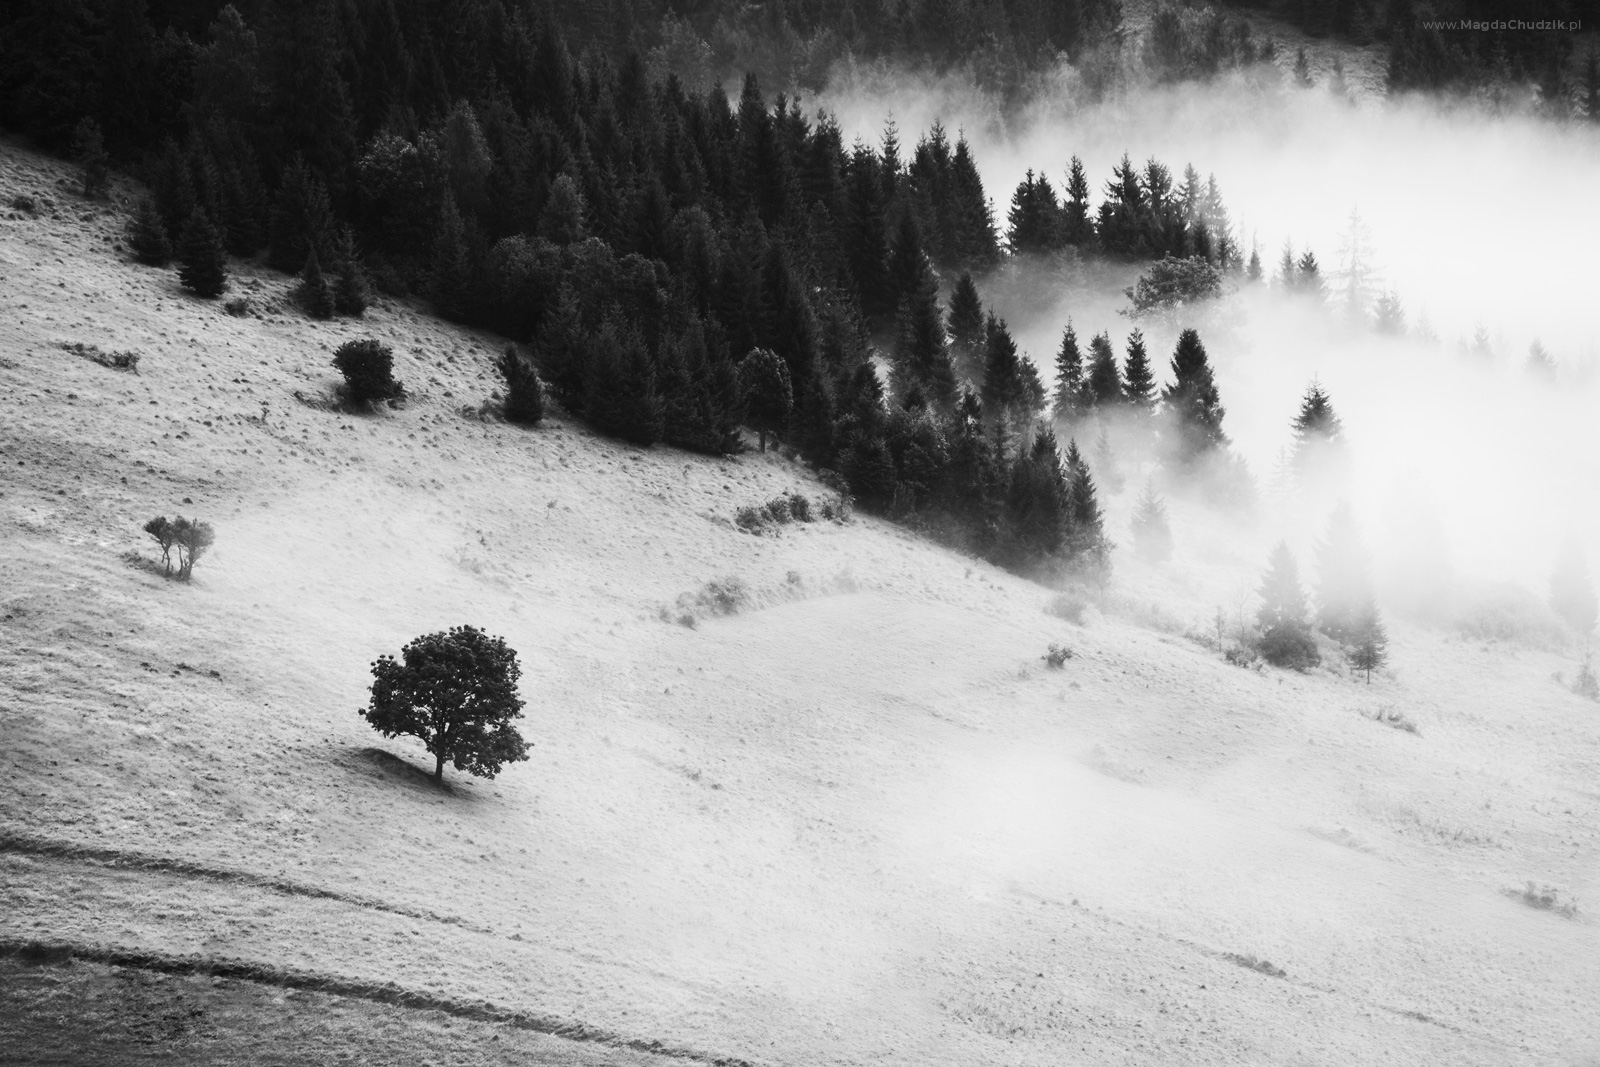 magda-chudzik-black-and-white-landscape-photography-30